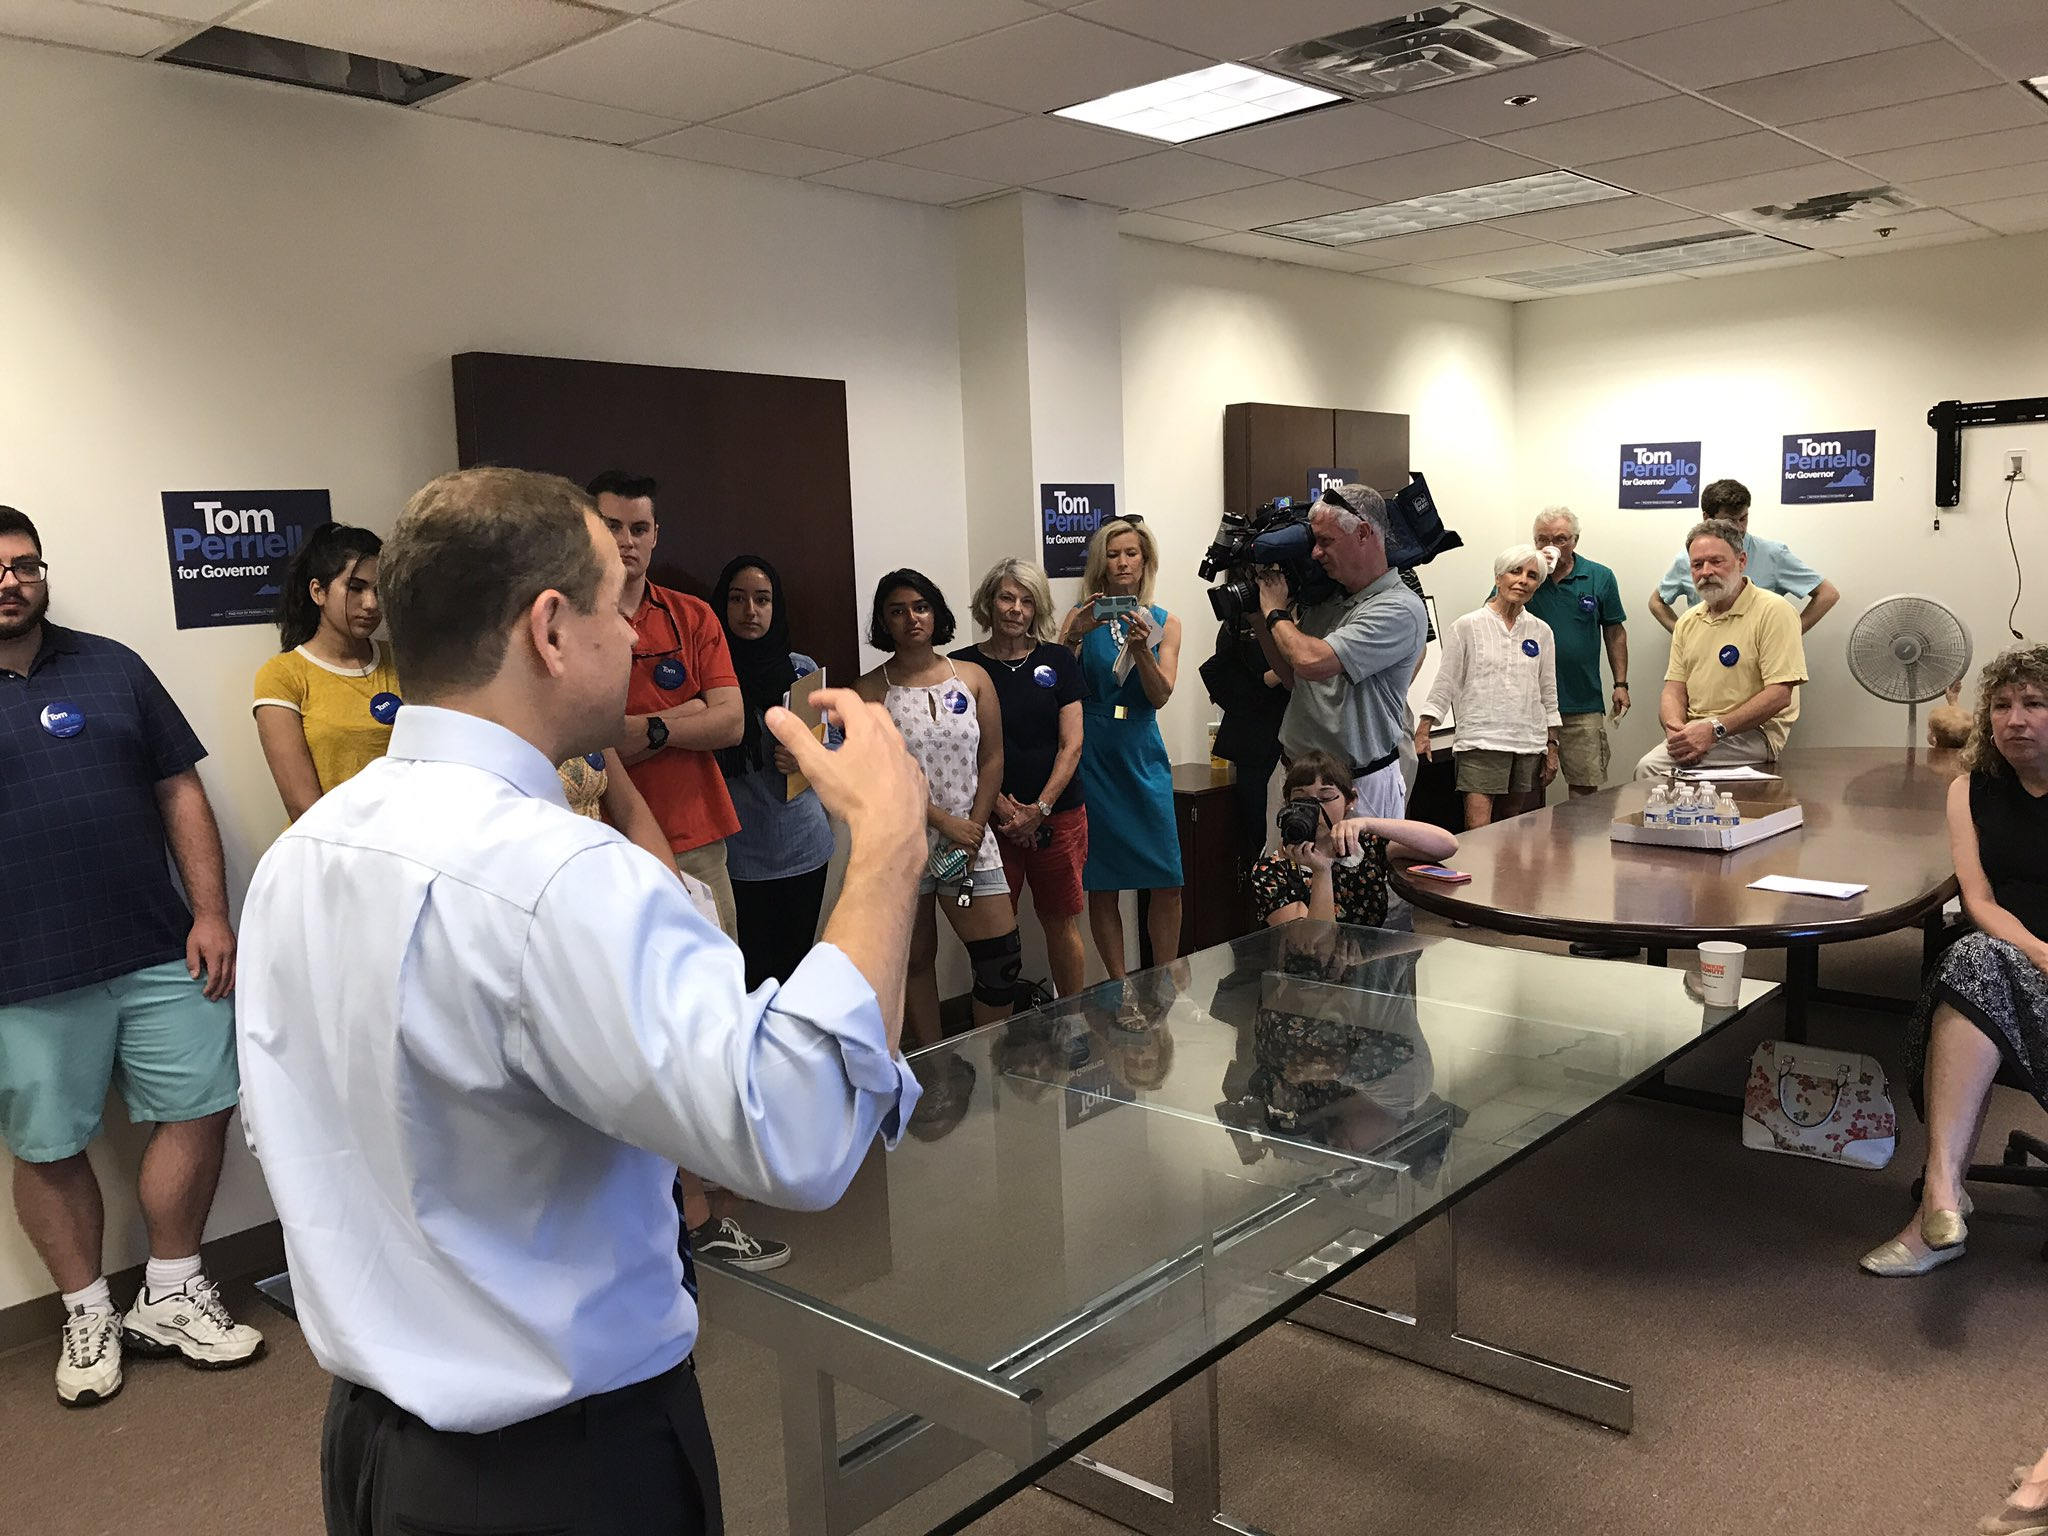 .@tomperriello in Sterling launching dozens of canvassers to help instrument a monumental political upset tomorrow https://t.co/sErc7uVf1z